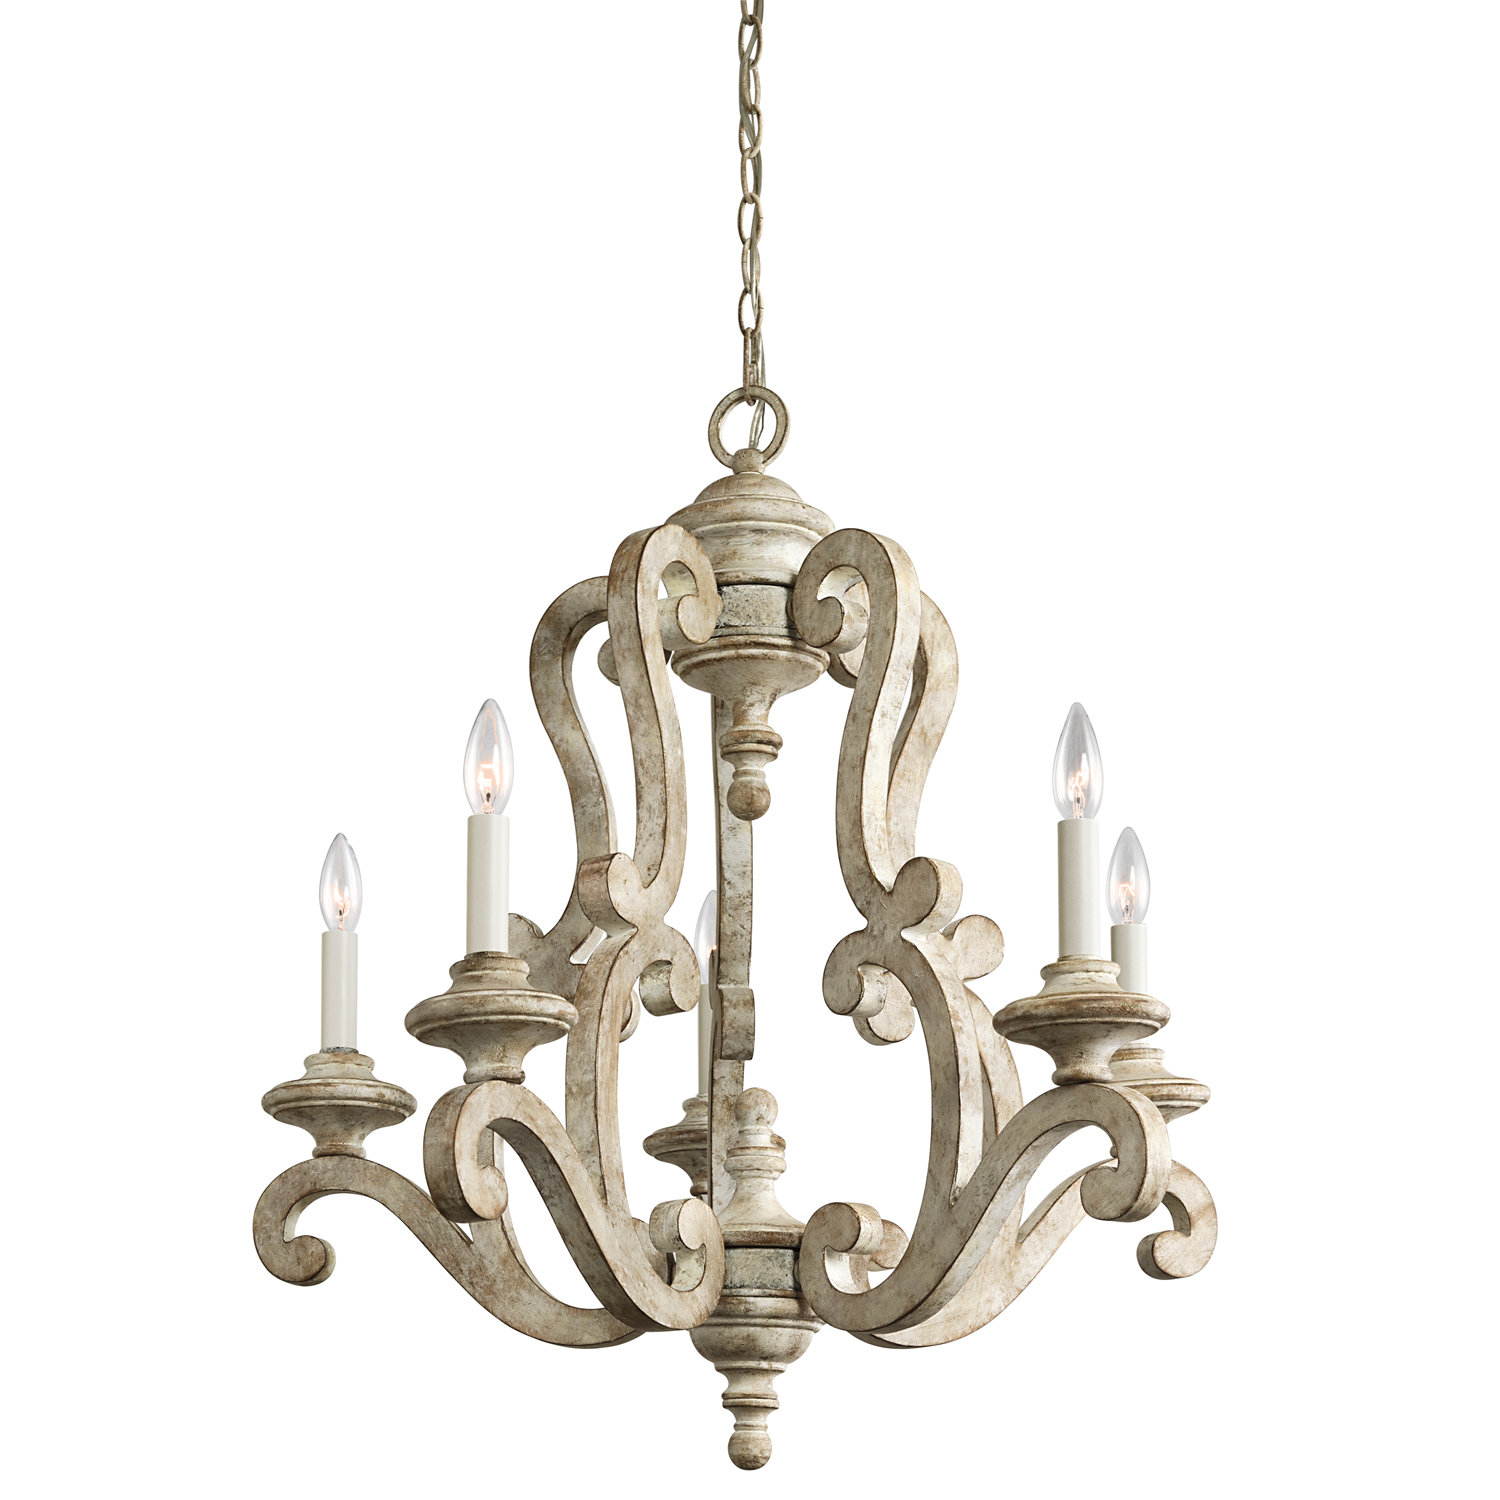 Guglielmo 5-Light Candle Style Chandelier regarding Shaylee 5-Light Candle Style Chandeliers (Image 8 of 30)